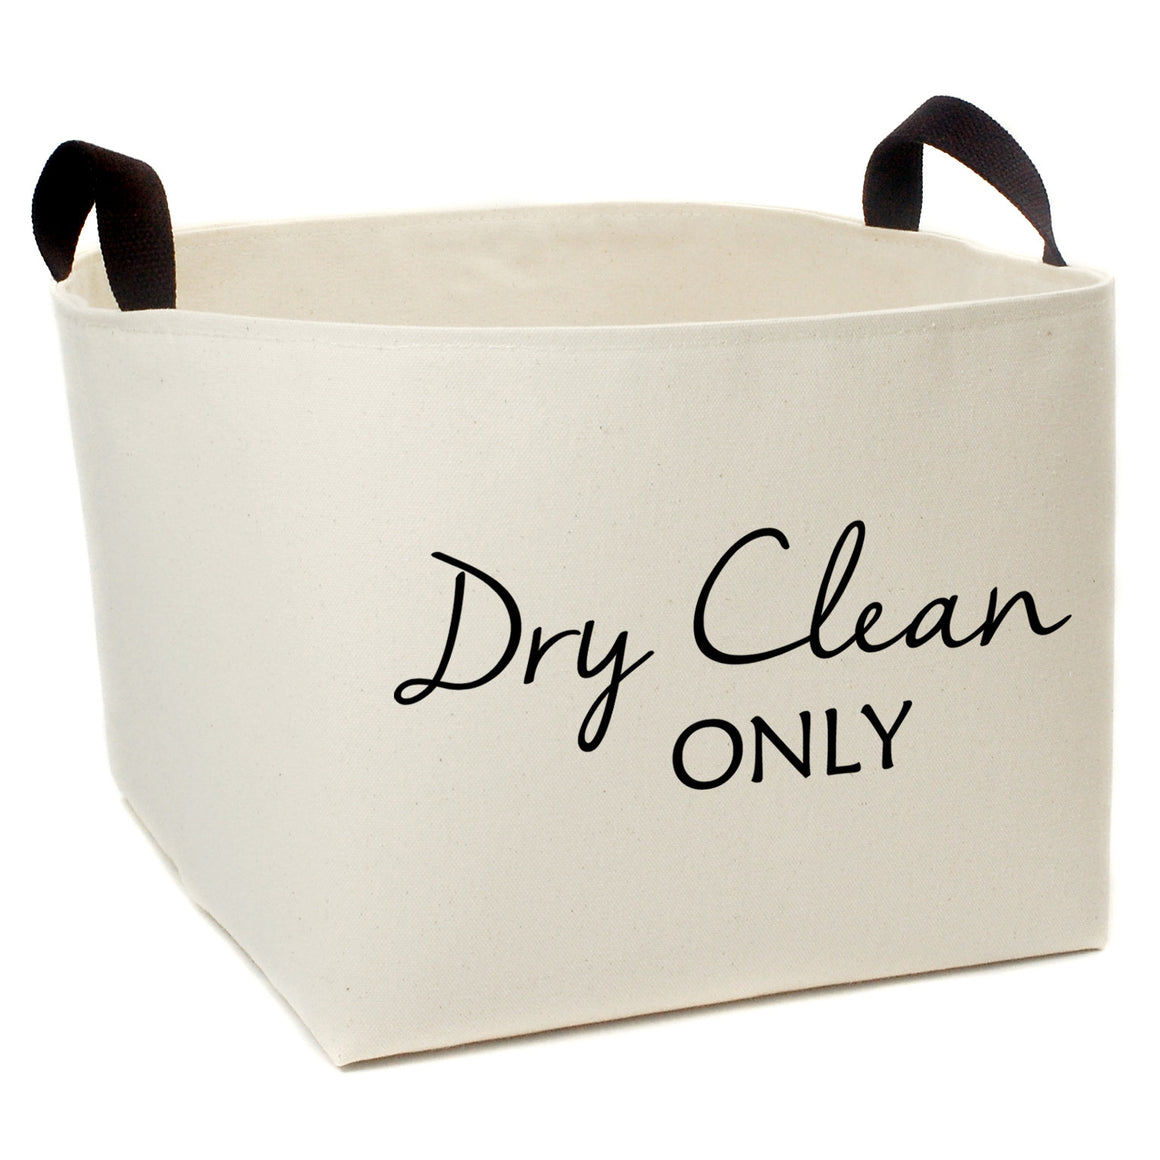 Dry Clean Only Canvas Storage Bin - A Southern Bucket - 1